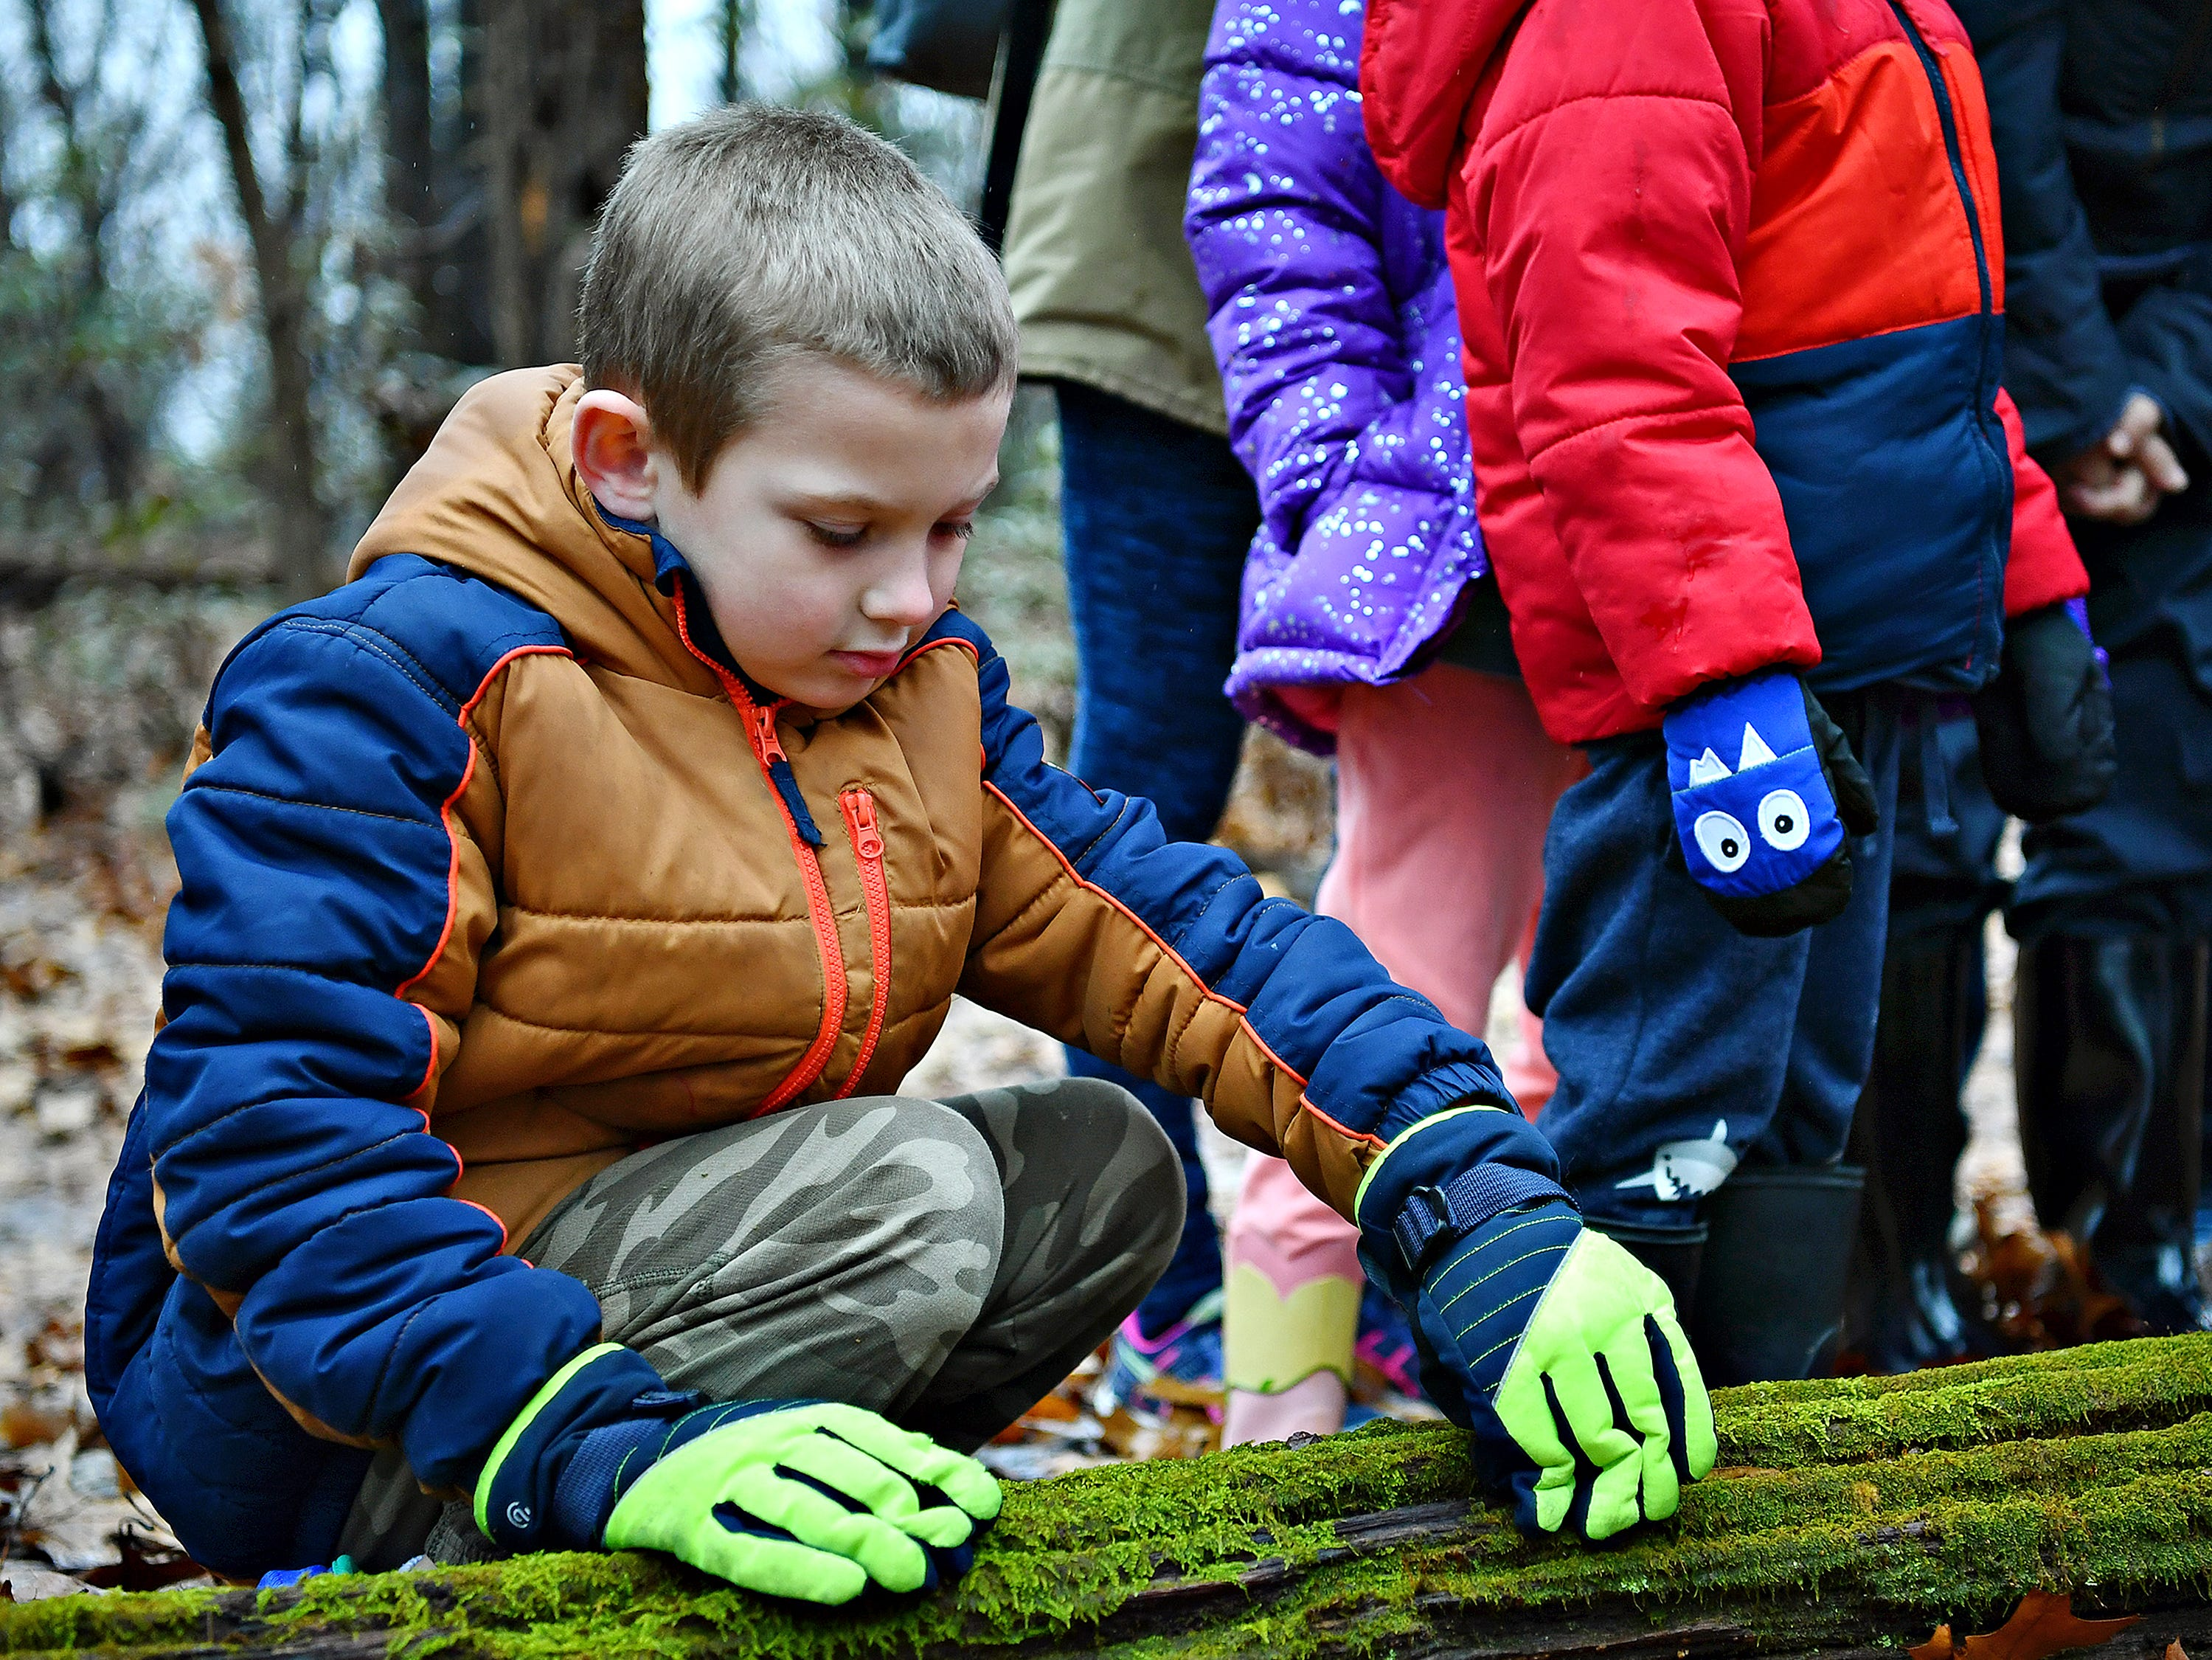 Lucas Buckler, 6, of East Manchester Township, examines a moss-covered log during a Marshmallow Hike at Rocky Ridge Park in Springettsbury Township, Friday, Dec. 28, 2018. Dawn J. Sagert photo